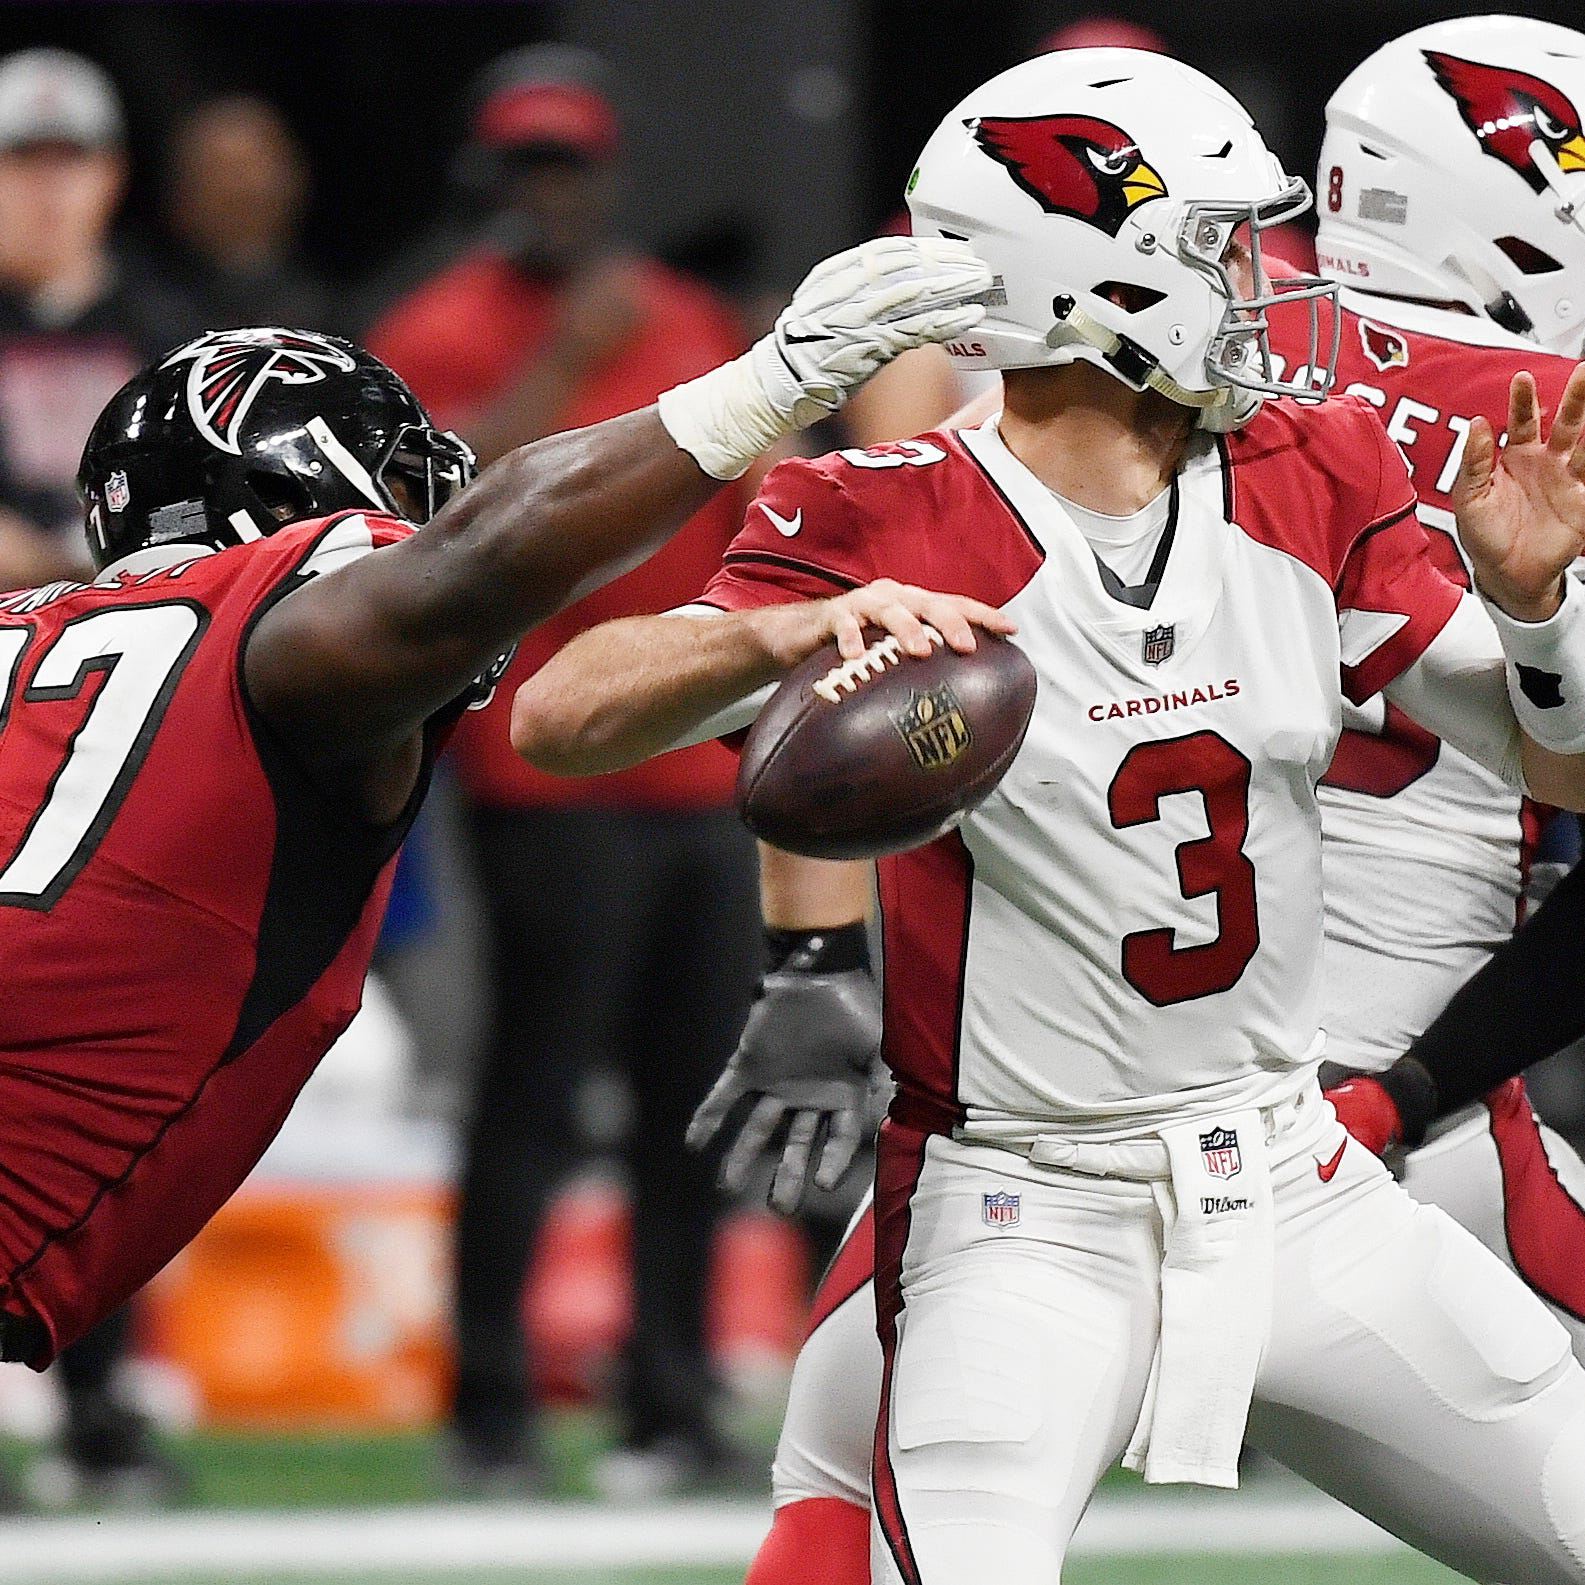 Cardinals left with no choice but to pull Josh Rosen as Falcons run away with rout